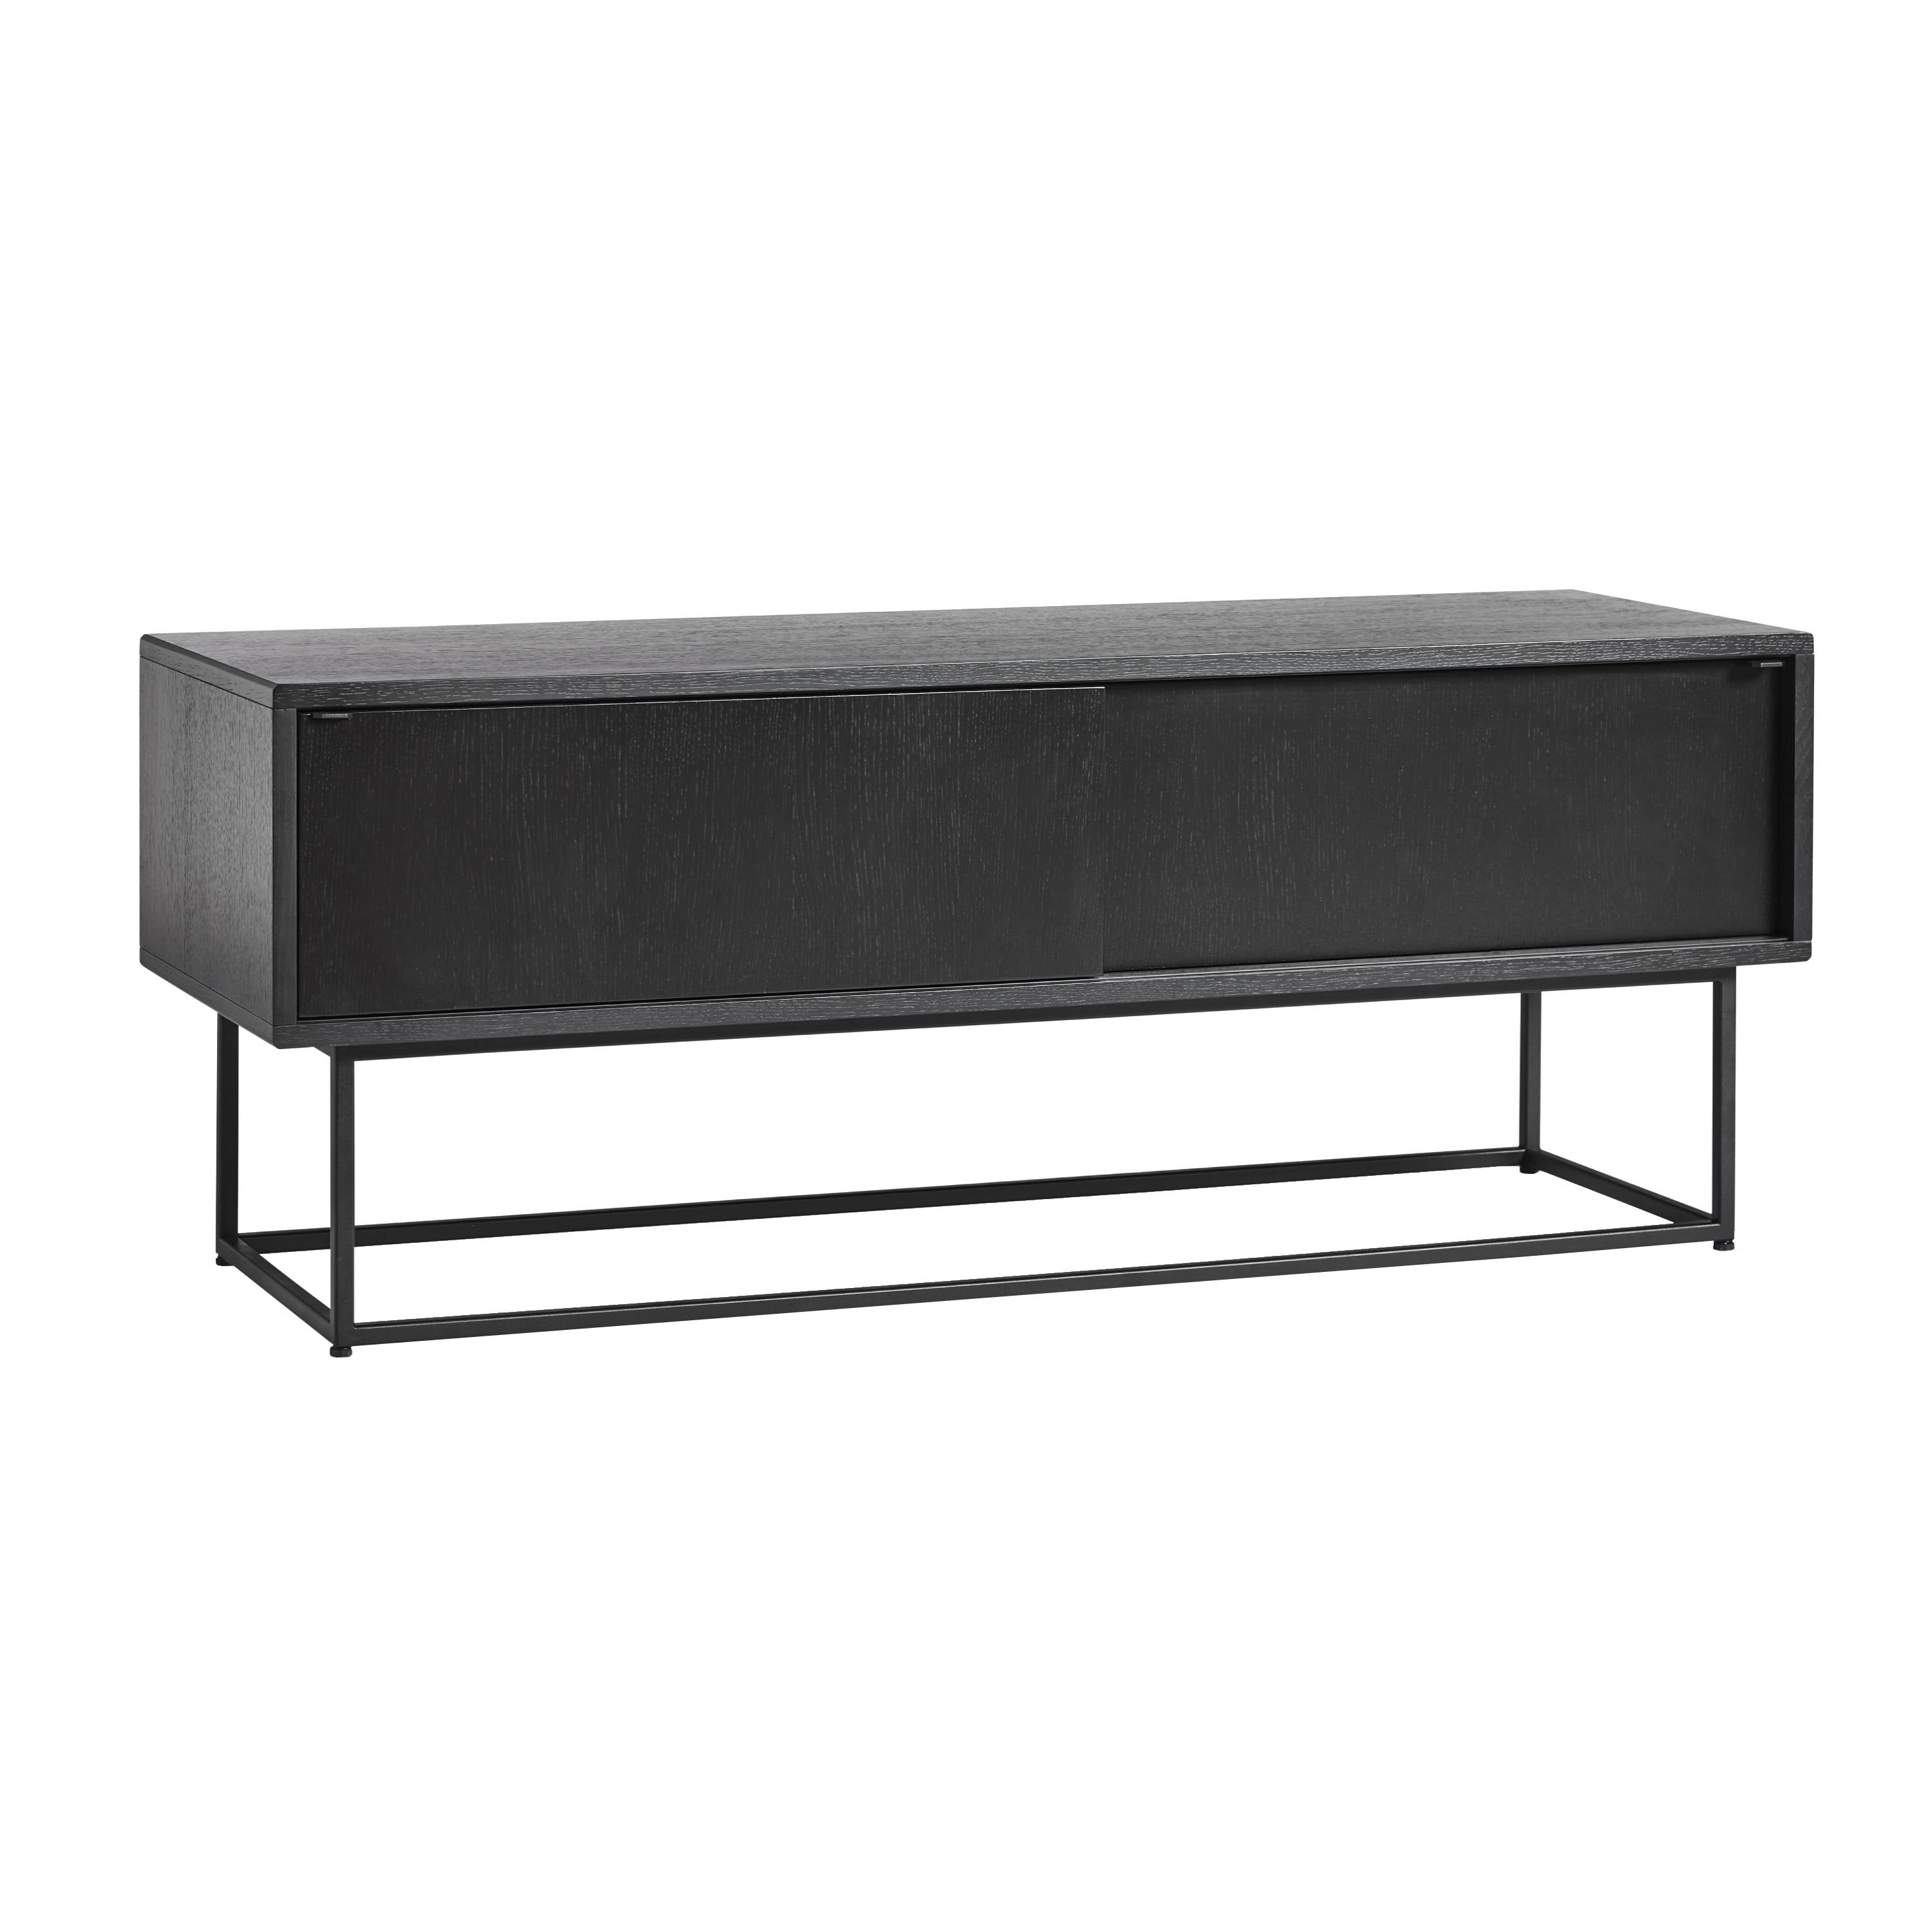 Virka Low Sideboard: Black + Black Oiled Oak Drawers